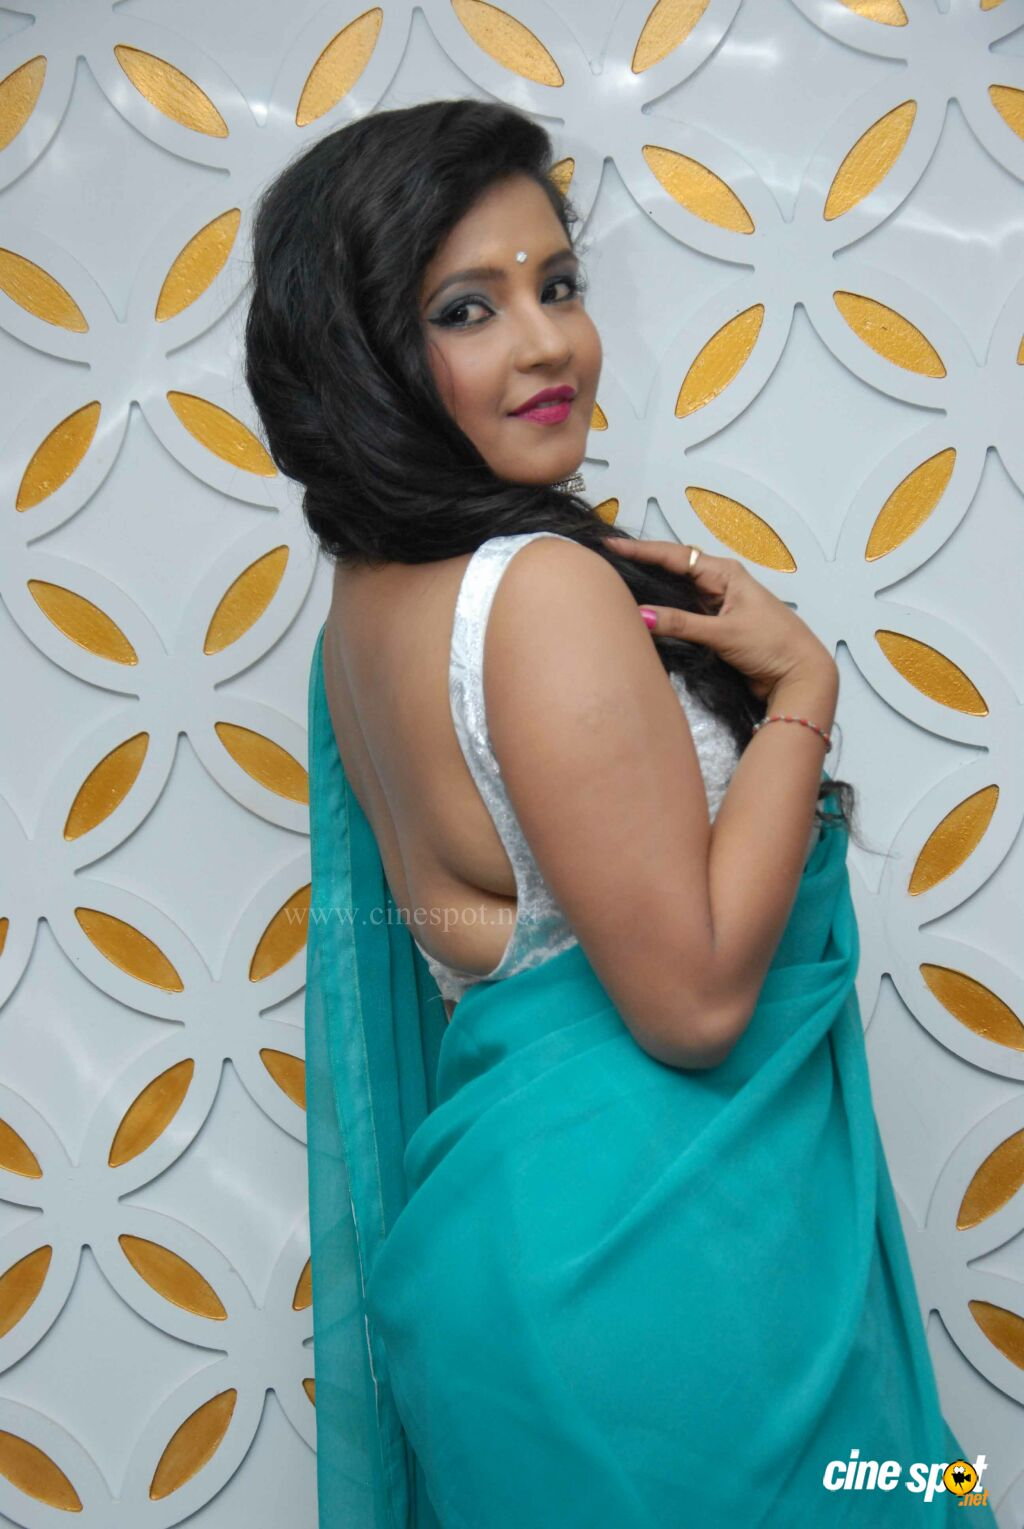 shubha poonja latest movie